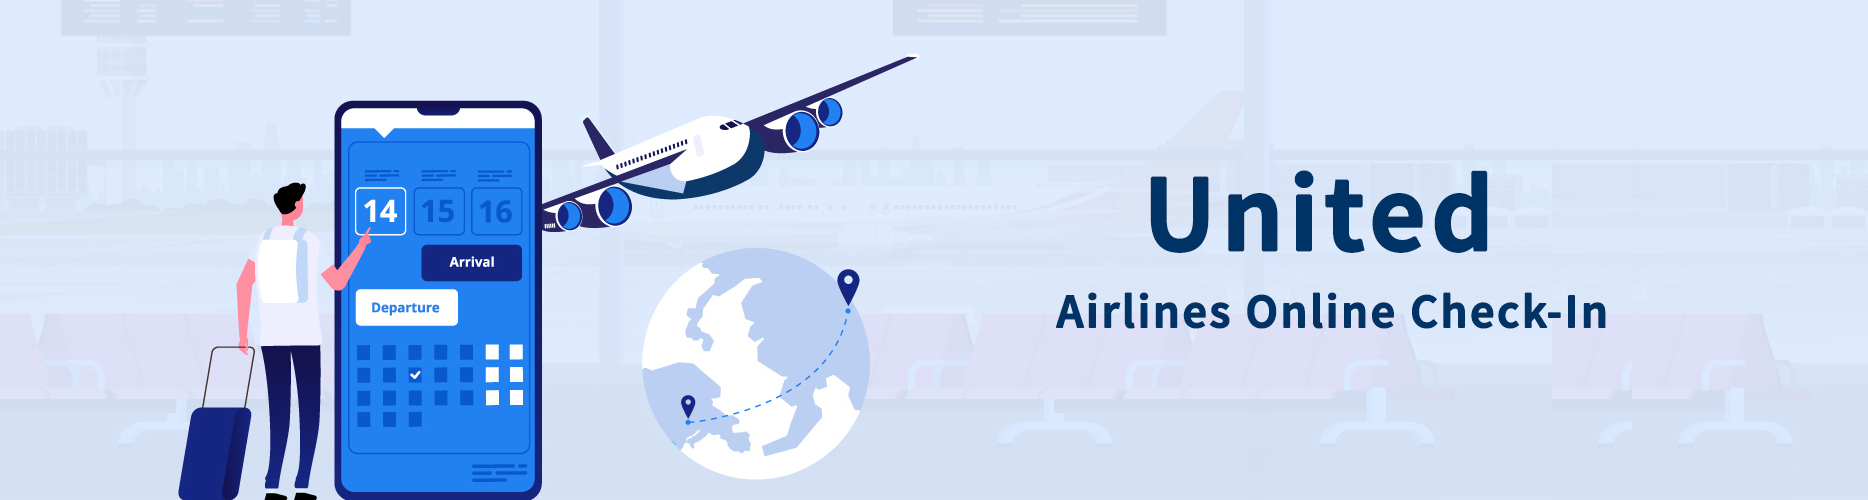 United-Airlines-Online-Check-In